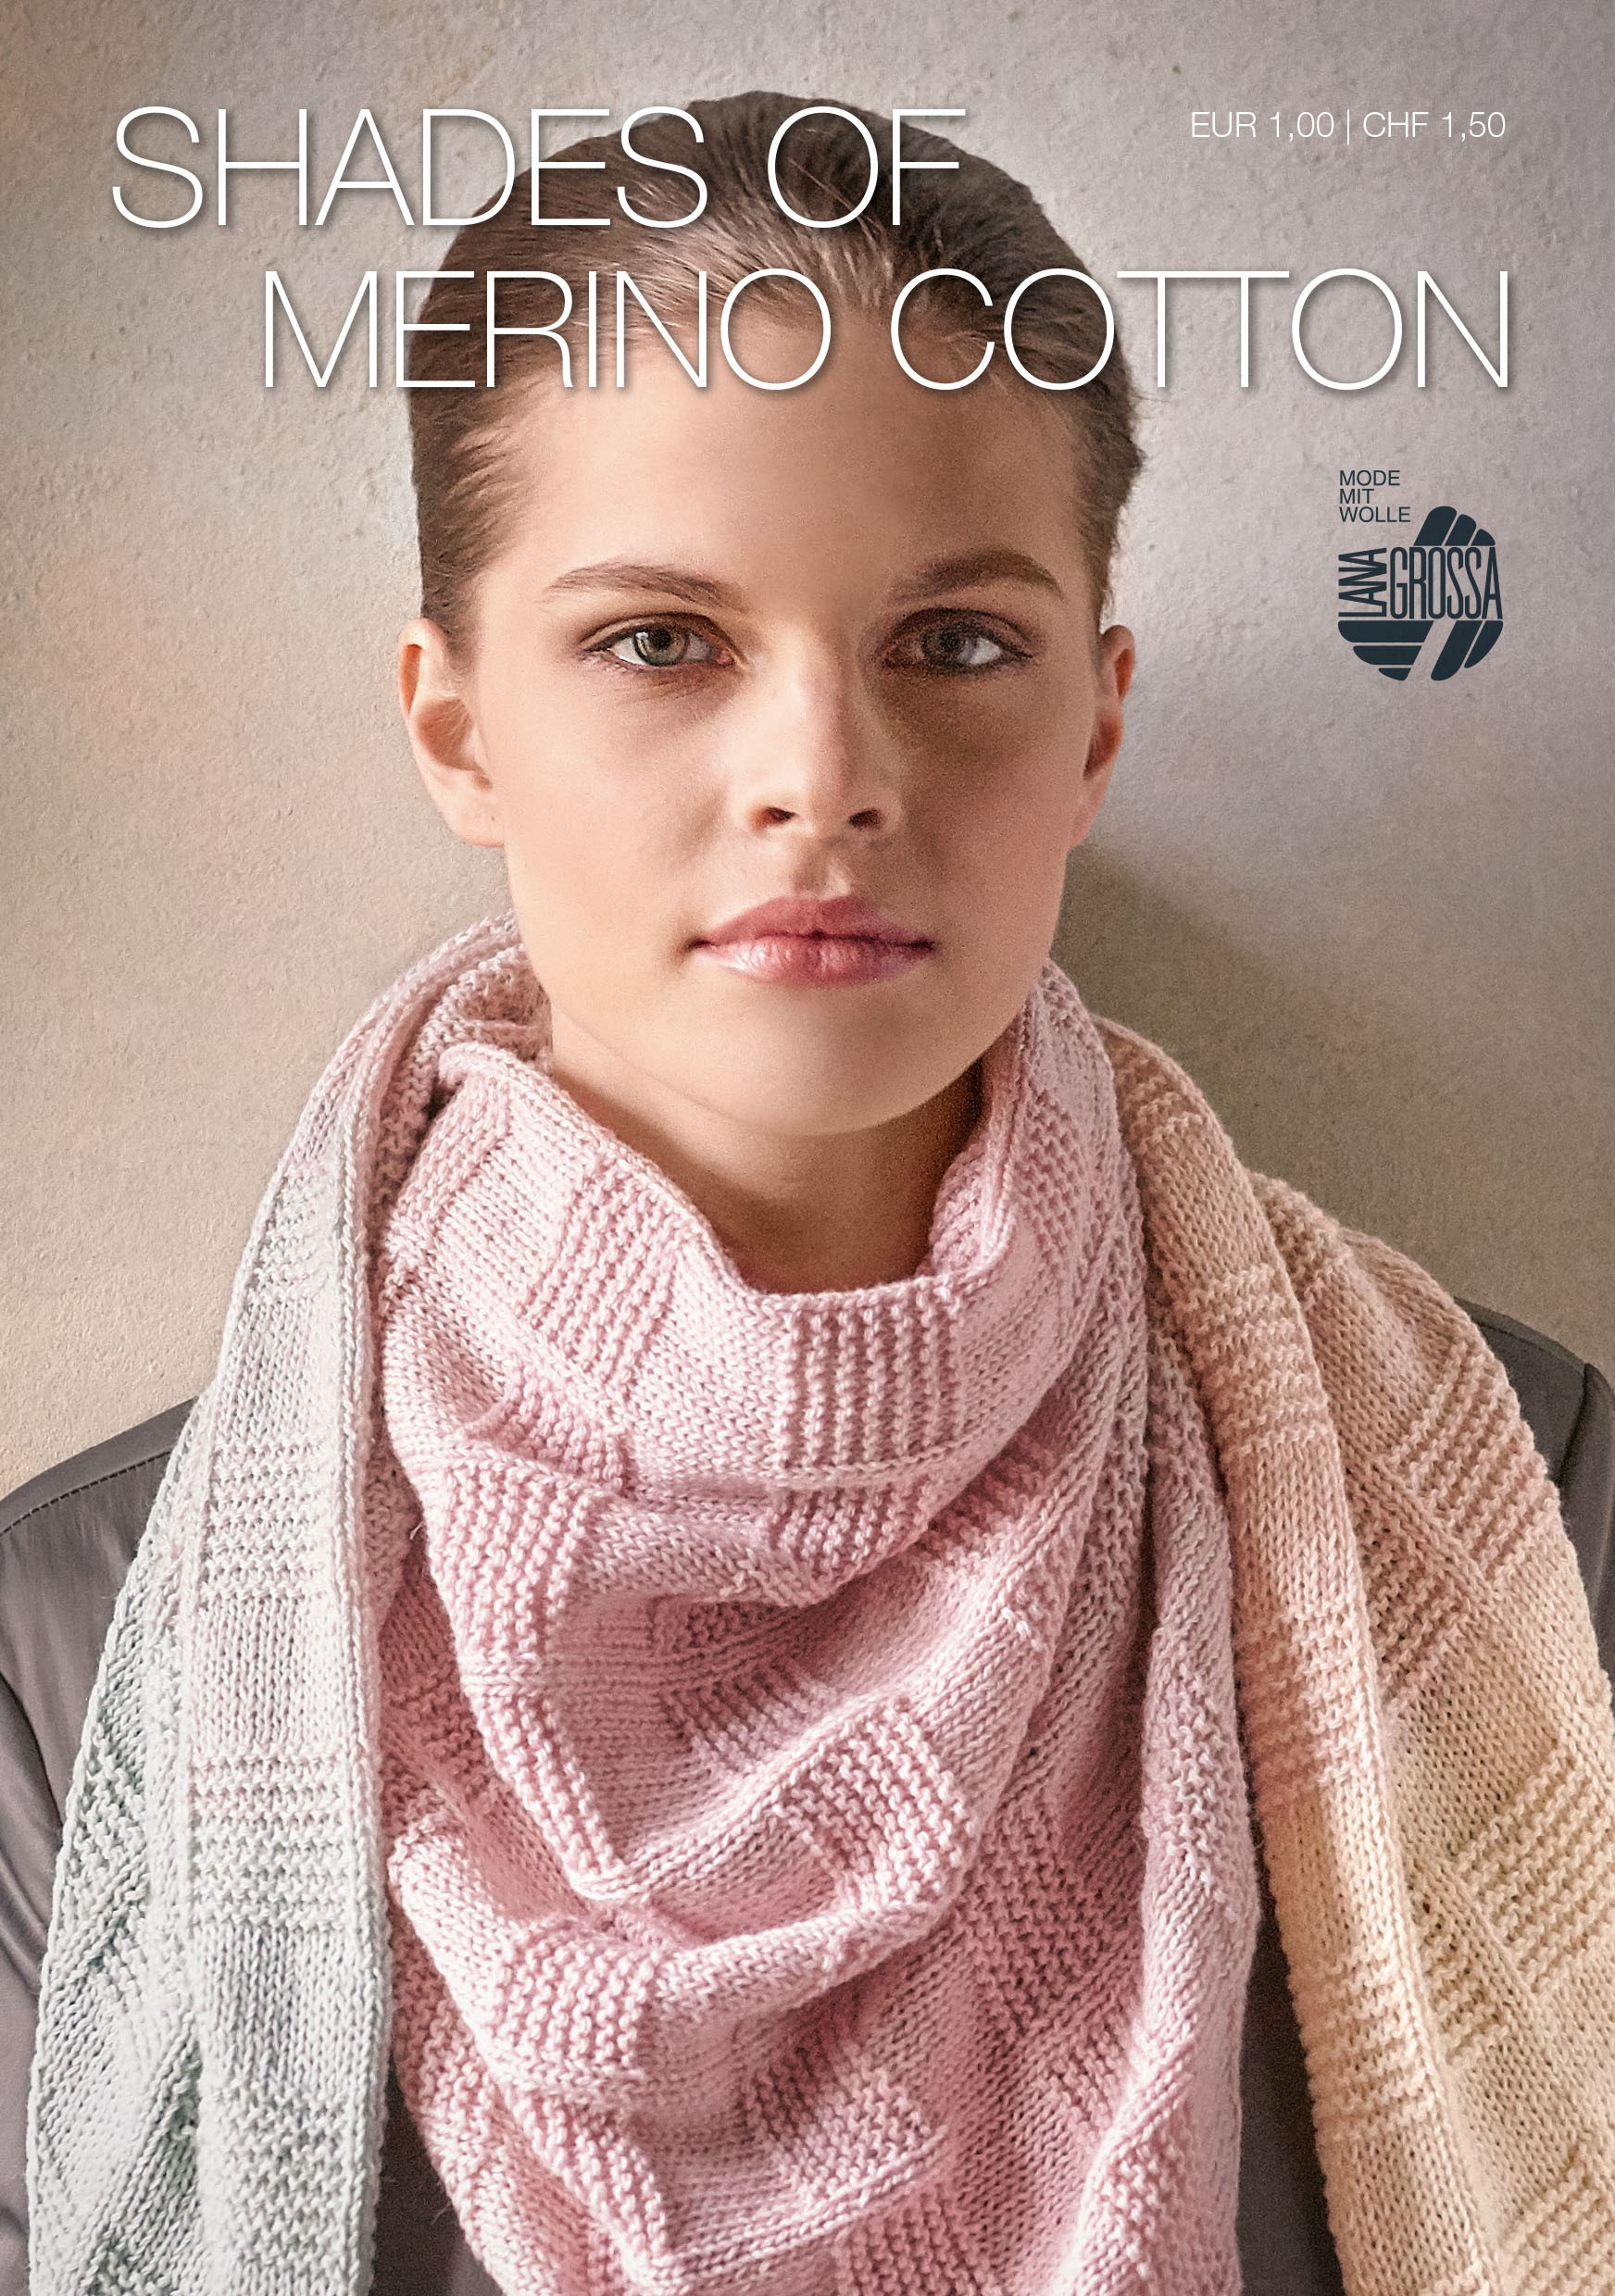 Lana Grossa SHADES OF MERINO COTTON Flyer 2017 - German Edition